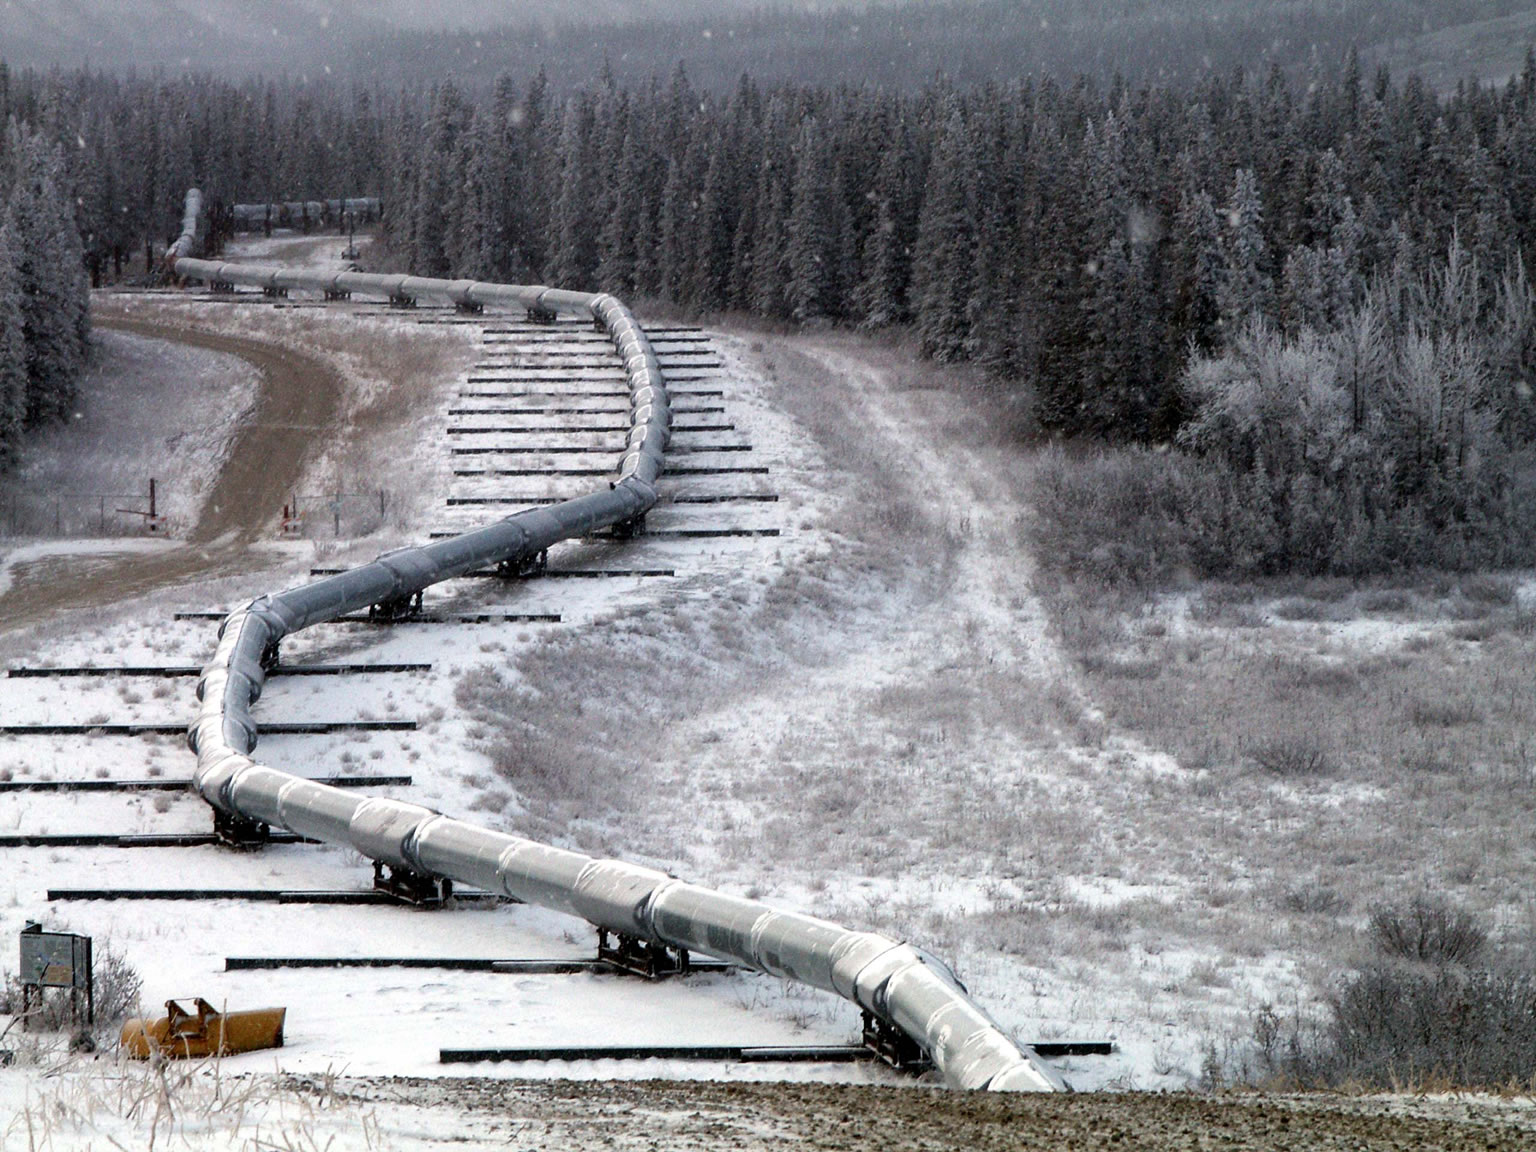 The Trans-Alaska oil pipeline is mounted on sliders where it crosses the Denali fault. During a large (magnitude 7.9) earthquake in 2002, this system allowed the pipeline to move without breaking.